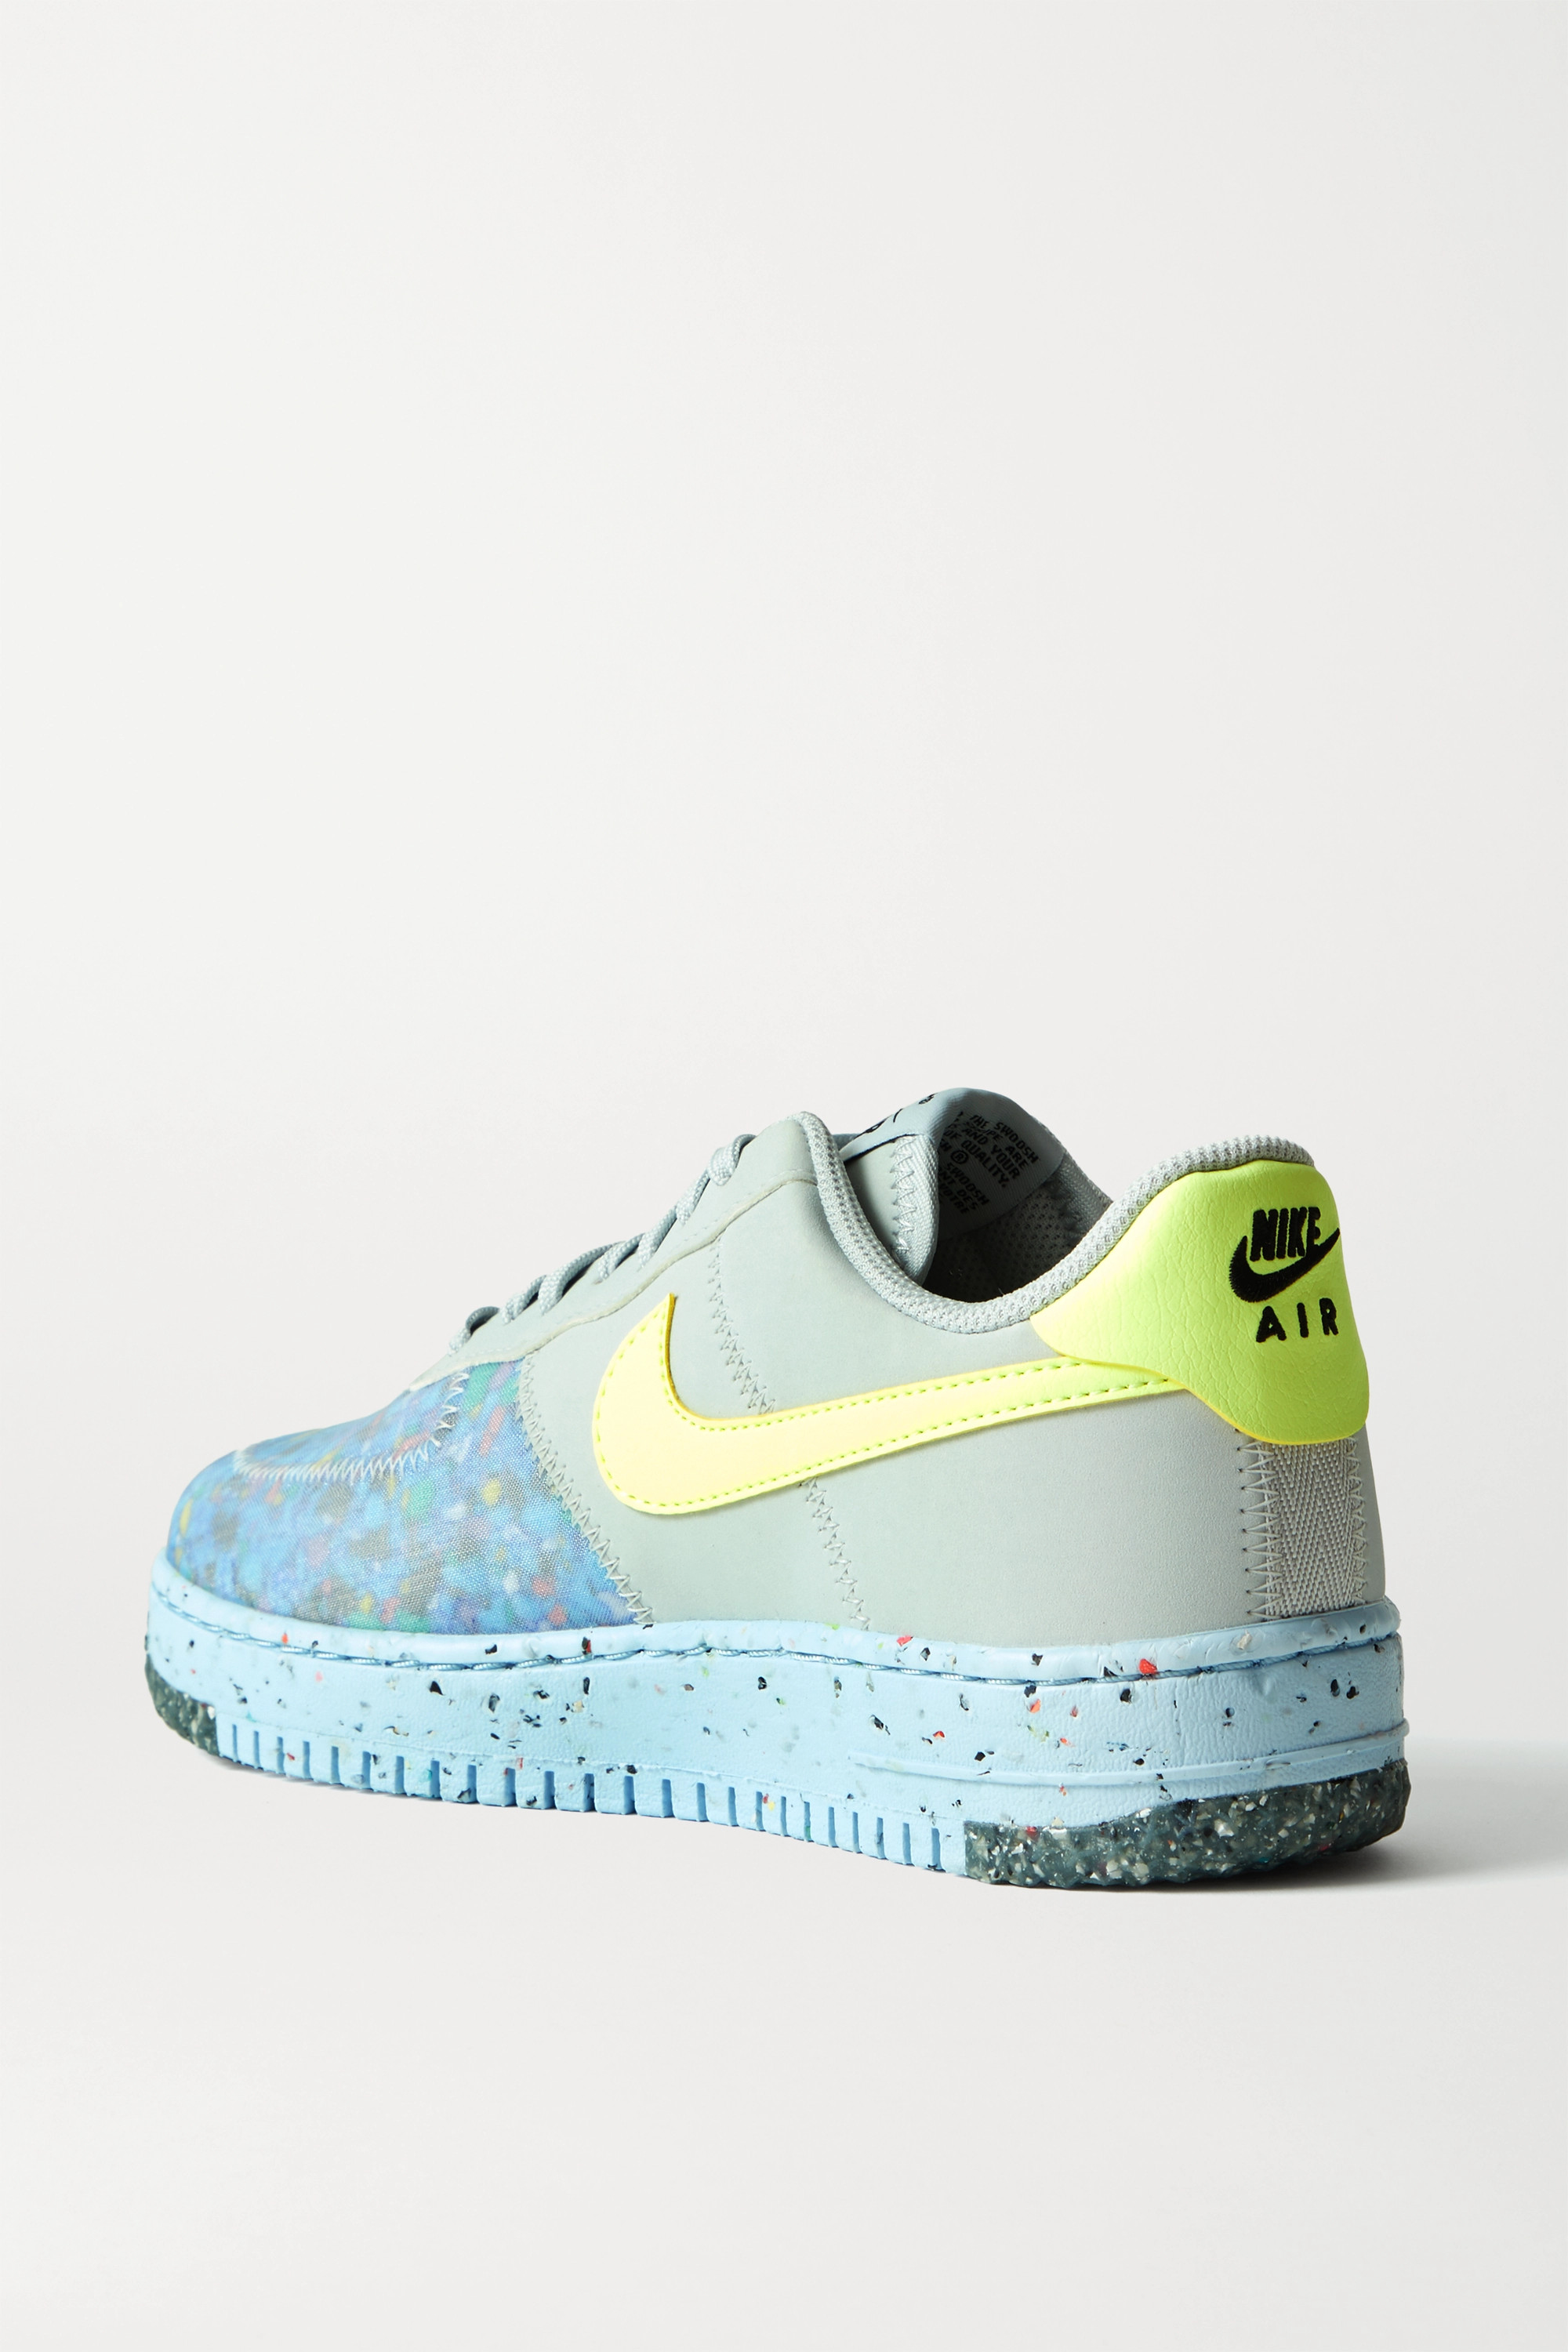 Nike Air Force 1 Crater faux leather and mesh sneakers